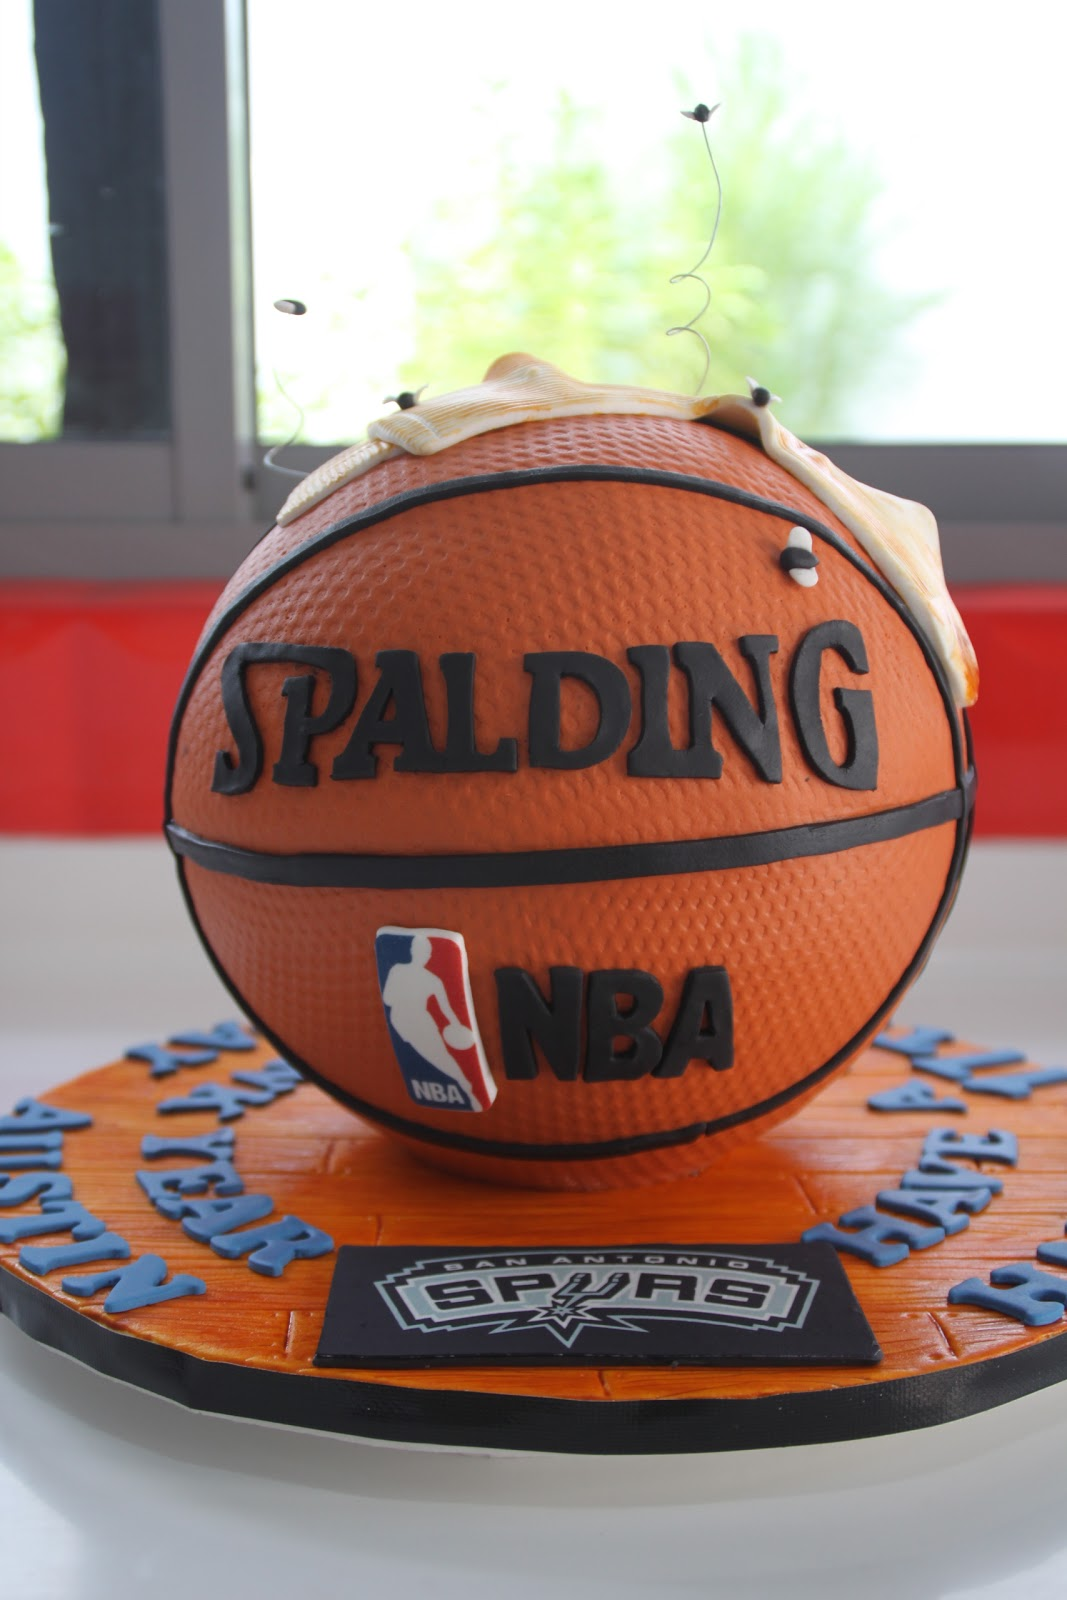 Cake Images Basketball : Celebrate with Cake!: Sculpted Basketball Cake with Socks